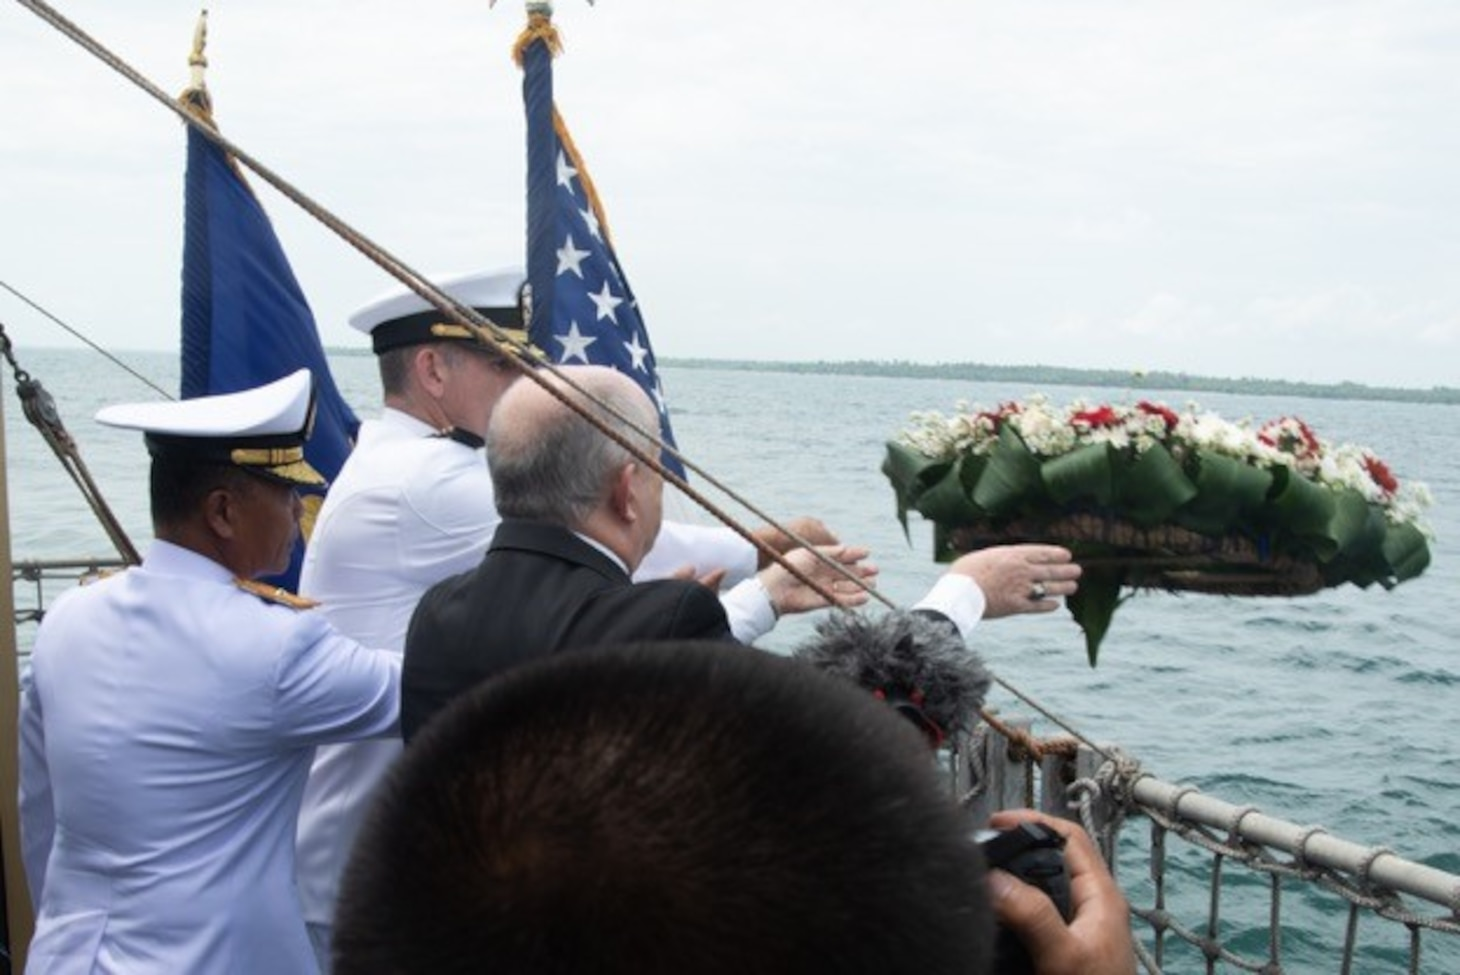 SUNDA STRAIT (March 1, 2019) U.S. Ambassador to Indonesia Joseph Donovan Jr. (right), Cmdr. Greg Adams (center), Naval Atache of U.S. Embassy Jakarta, and a senior leader of the Indonesian Navy (TNI-AL) lay a wreath during a memorial service aboard the Indonesian Navy ship Kri Usman Harun (359). The ceremony was held to honor the American and Australian crews of USS Houston (CA 30) and HMAS Perth (D 29) that lost their lives in battle against the Japanese Imperial Navy during World War II.